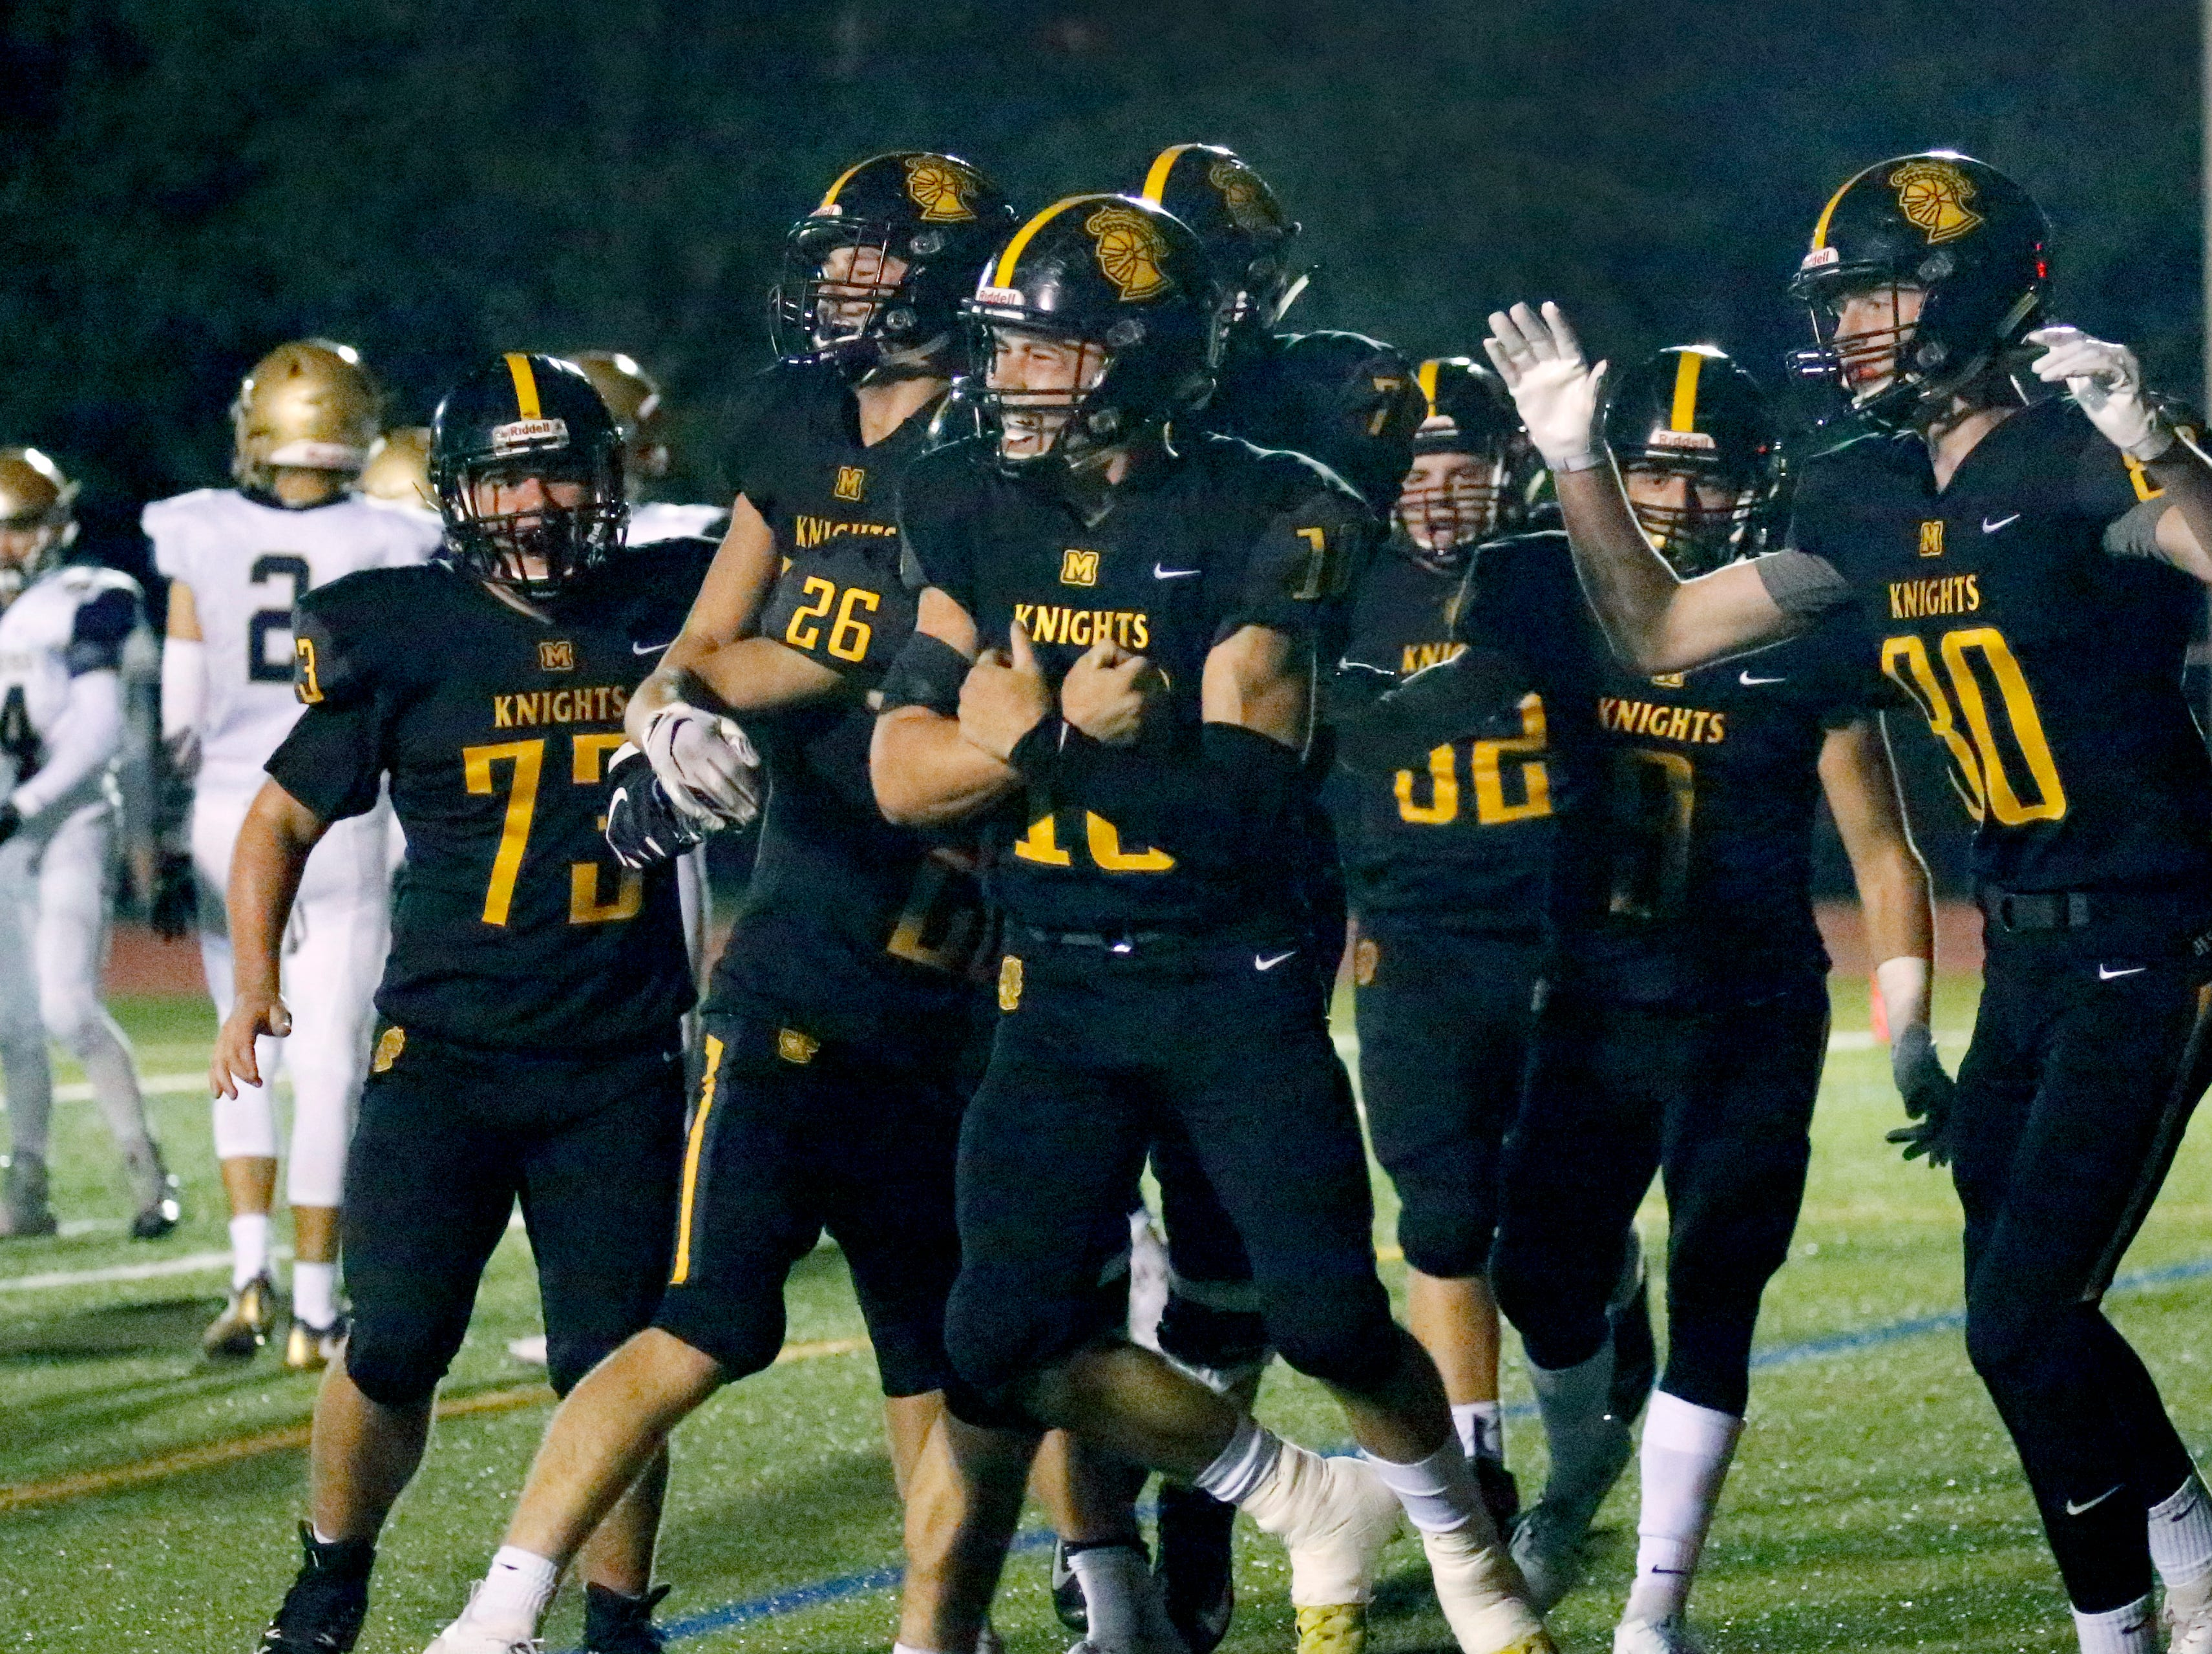 McQuaid's Hunter Walsh celebrates his team's second touchdown that closed the gap to 24-14 in the second quarter at McQuaid Jesuit High School.